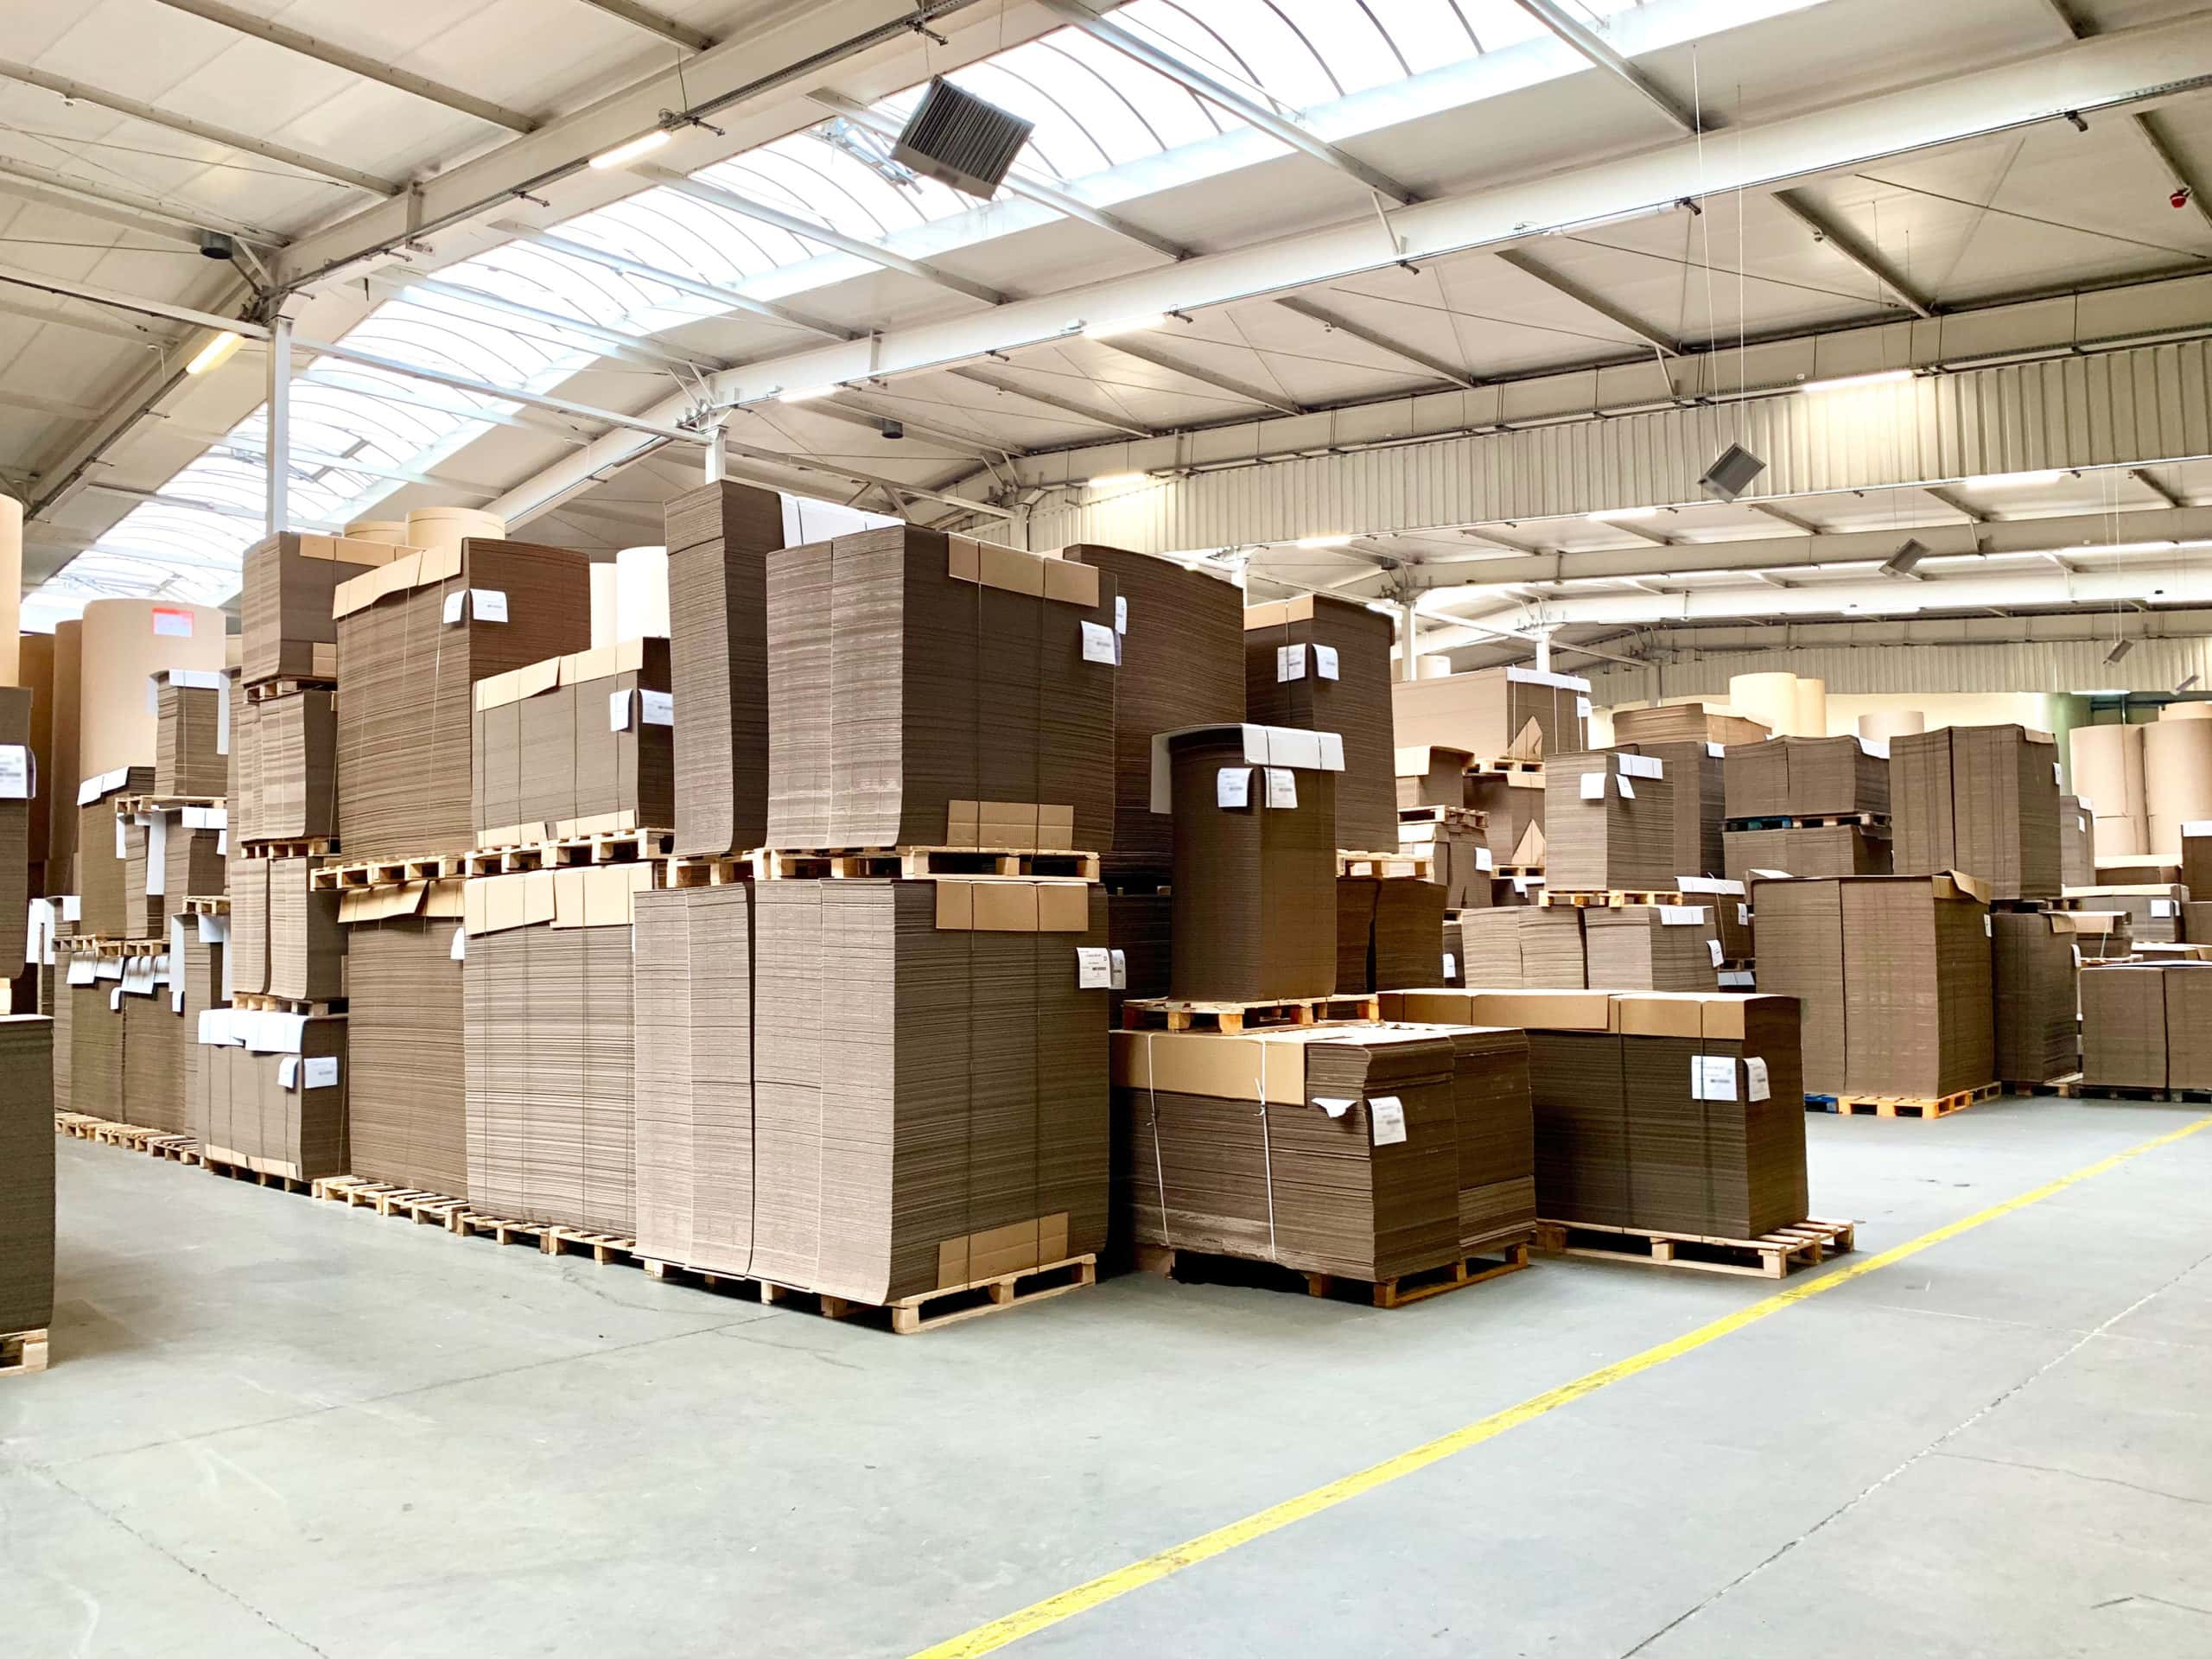 Corrugated cardboard pallets in the generic warehouse